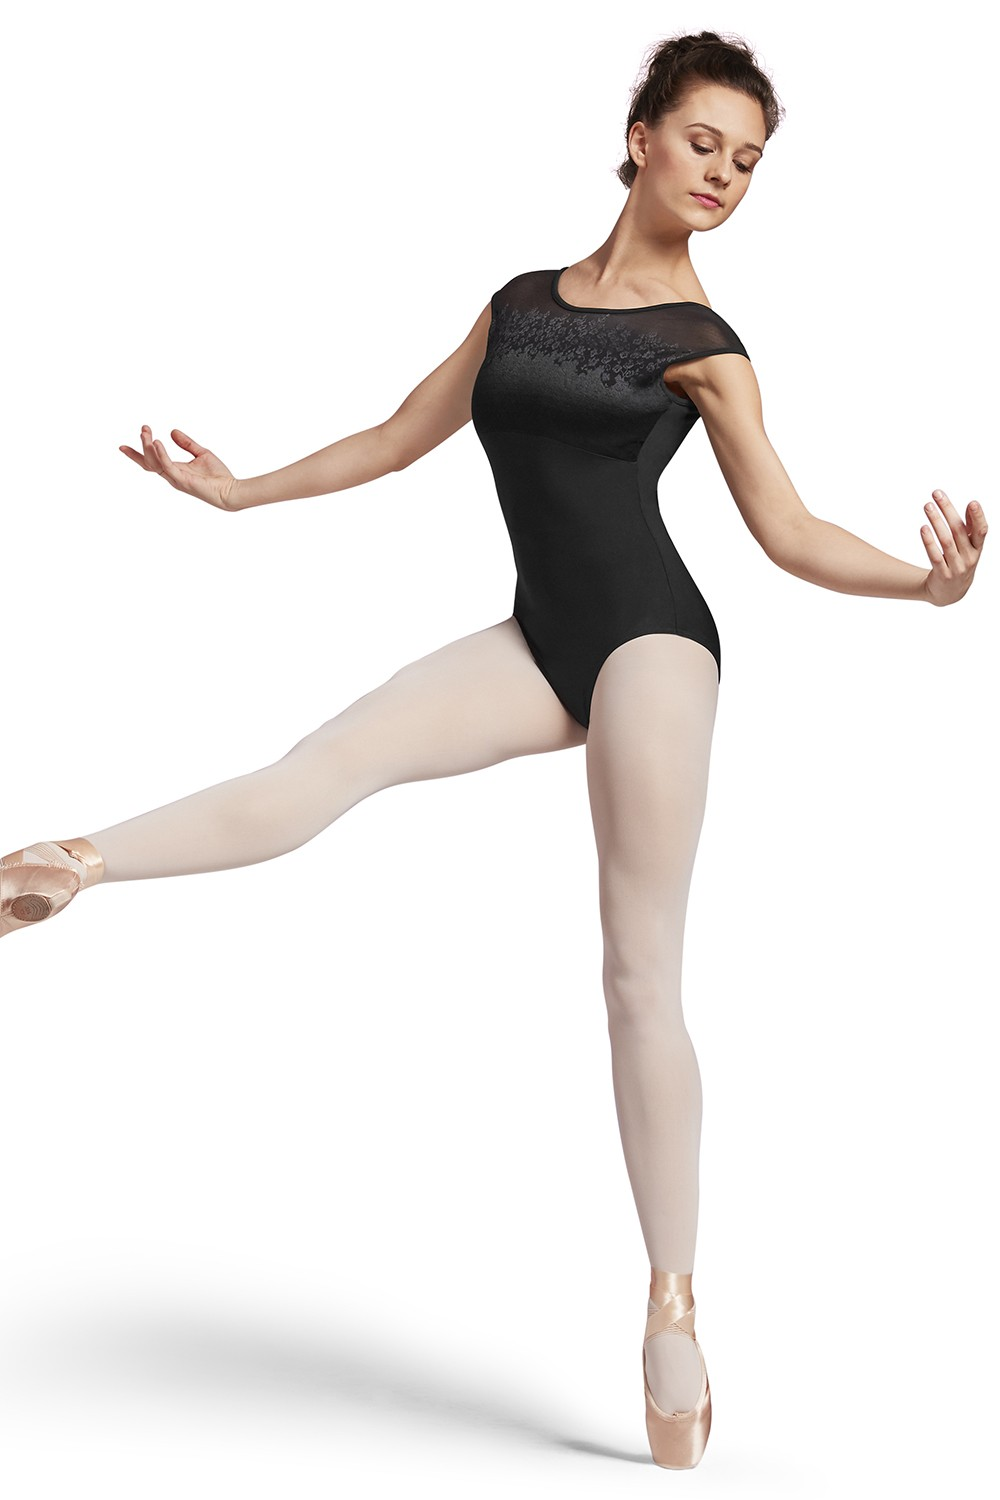 Alibassy Women's Dance Leotards